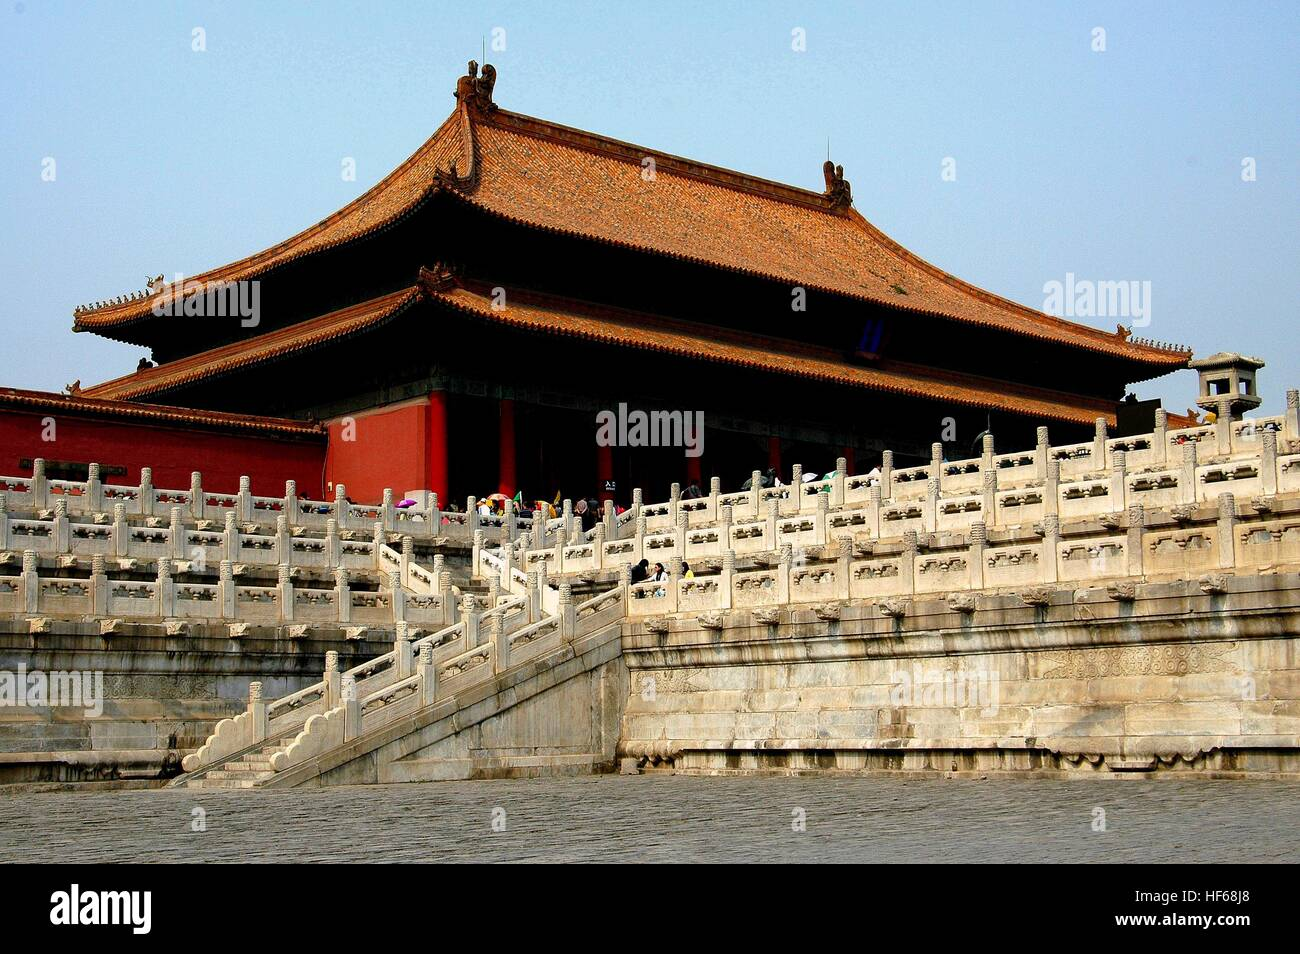 Beijing, China - May 2, 2005:  The Hall of Supreme Harmony with its white marble staircases, waterspouts, and balustrades - Stock Image